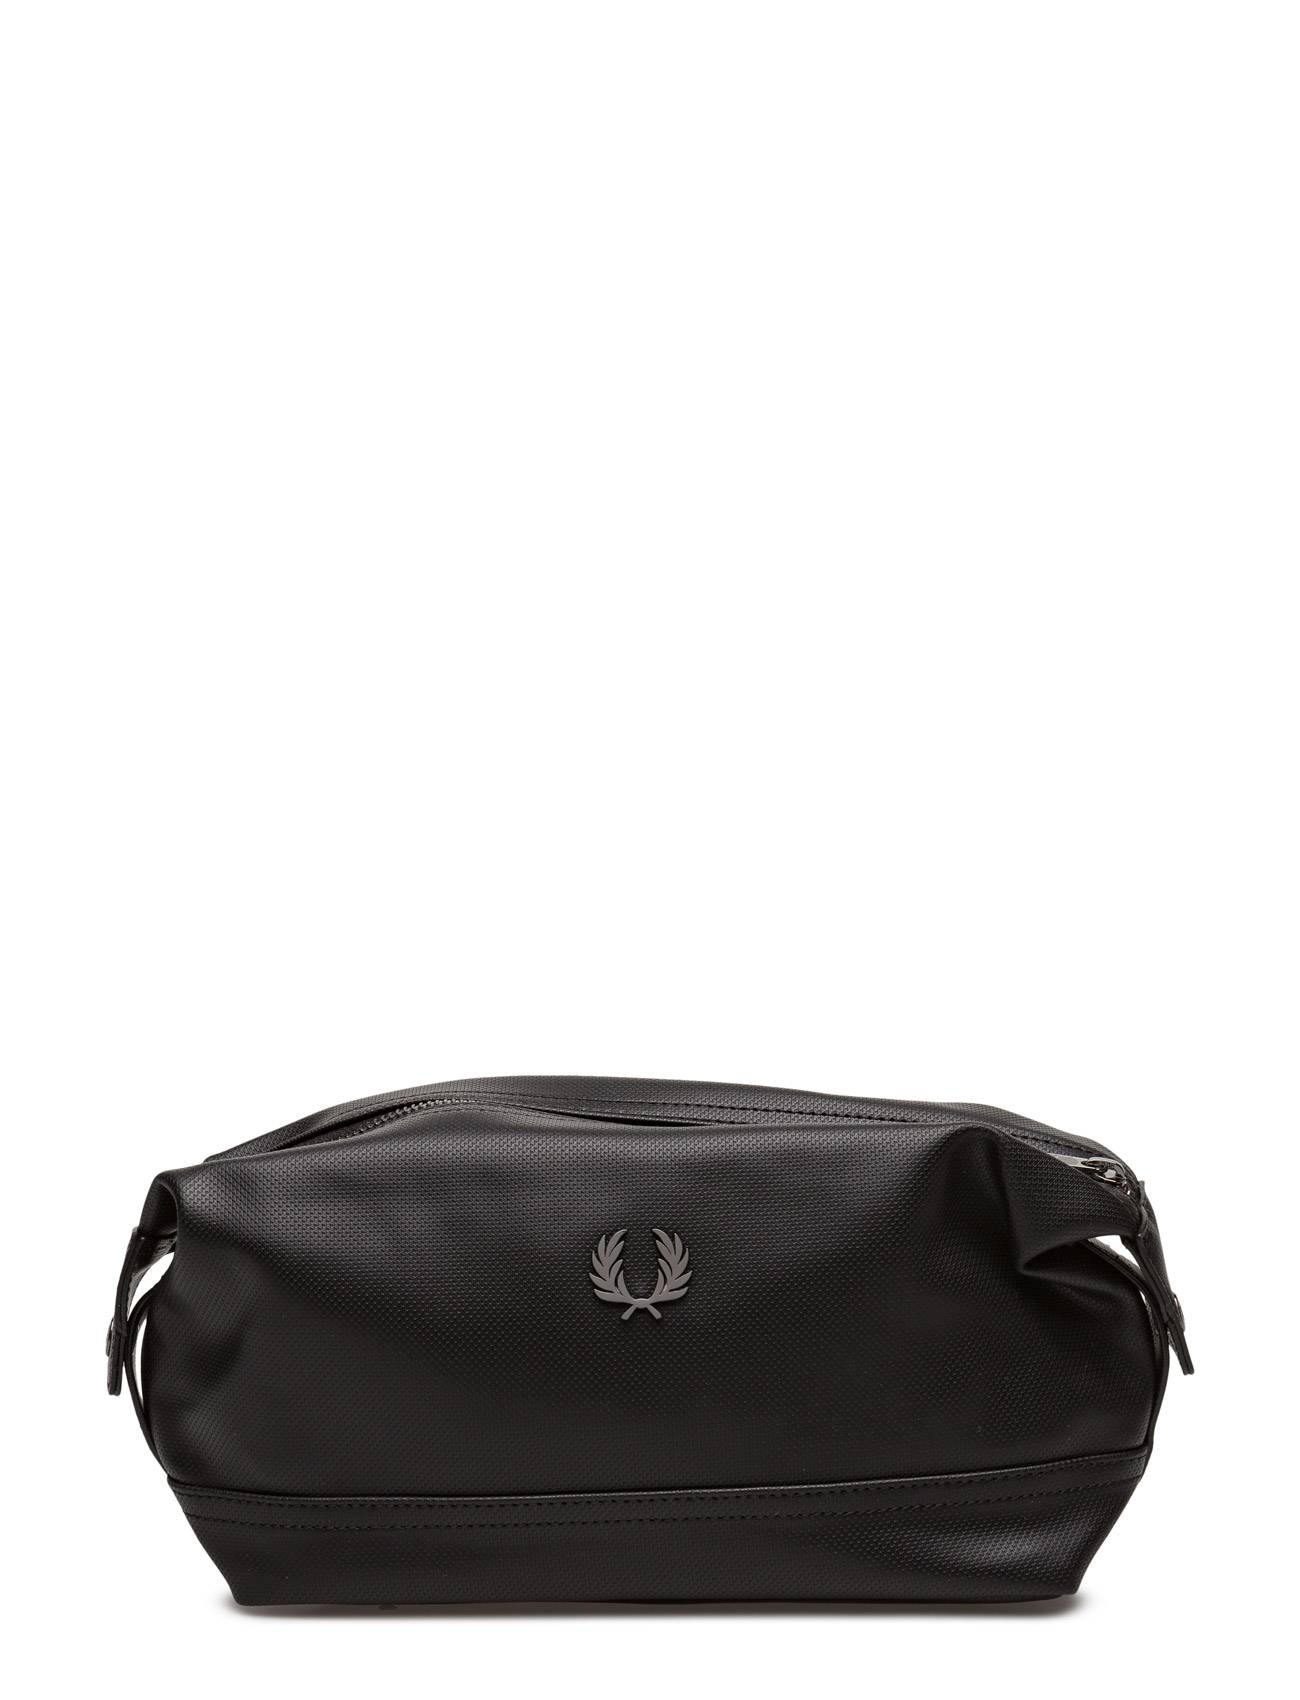 Fred Perry Travel Kit Bag